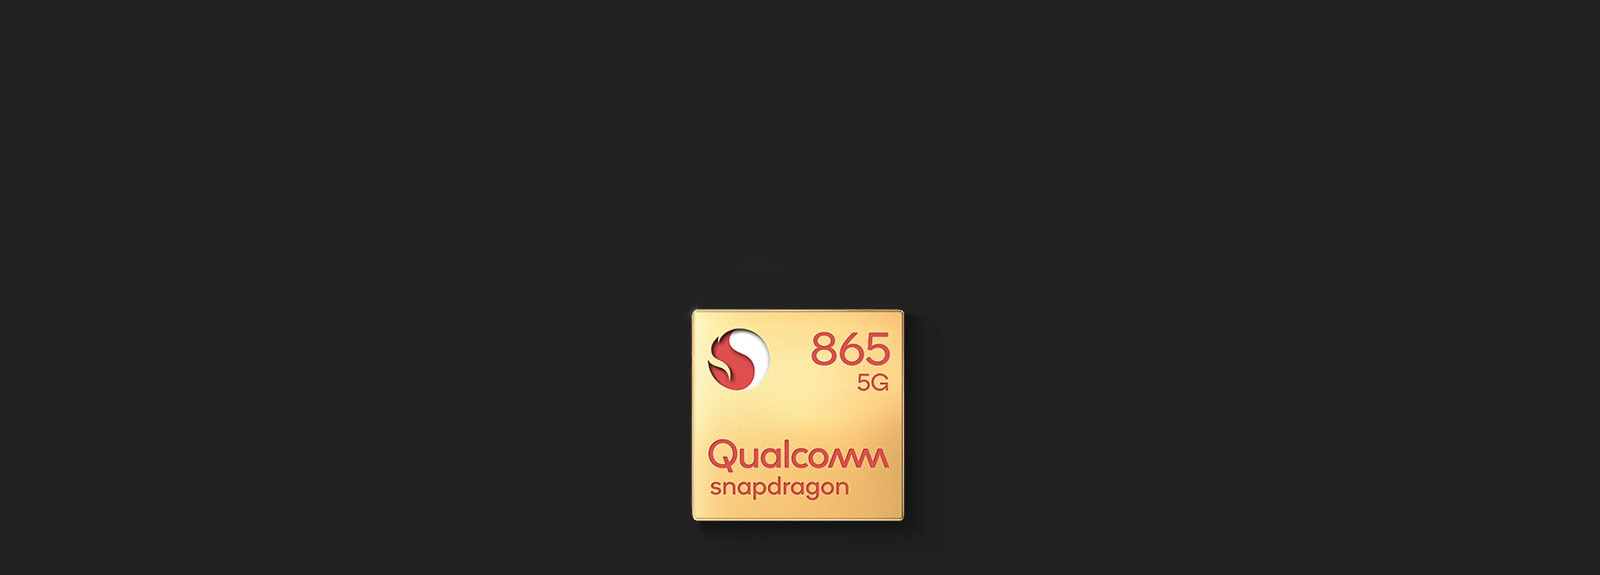 Image of Qualcomm® Snapdragon™ 865 5G Badge